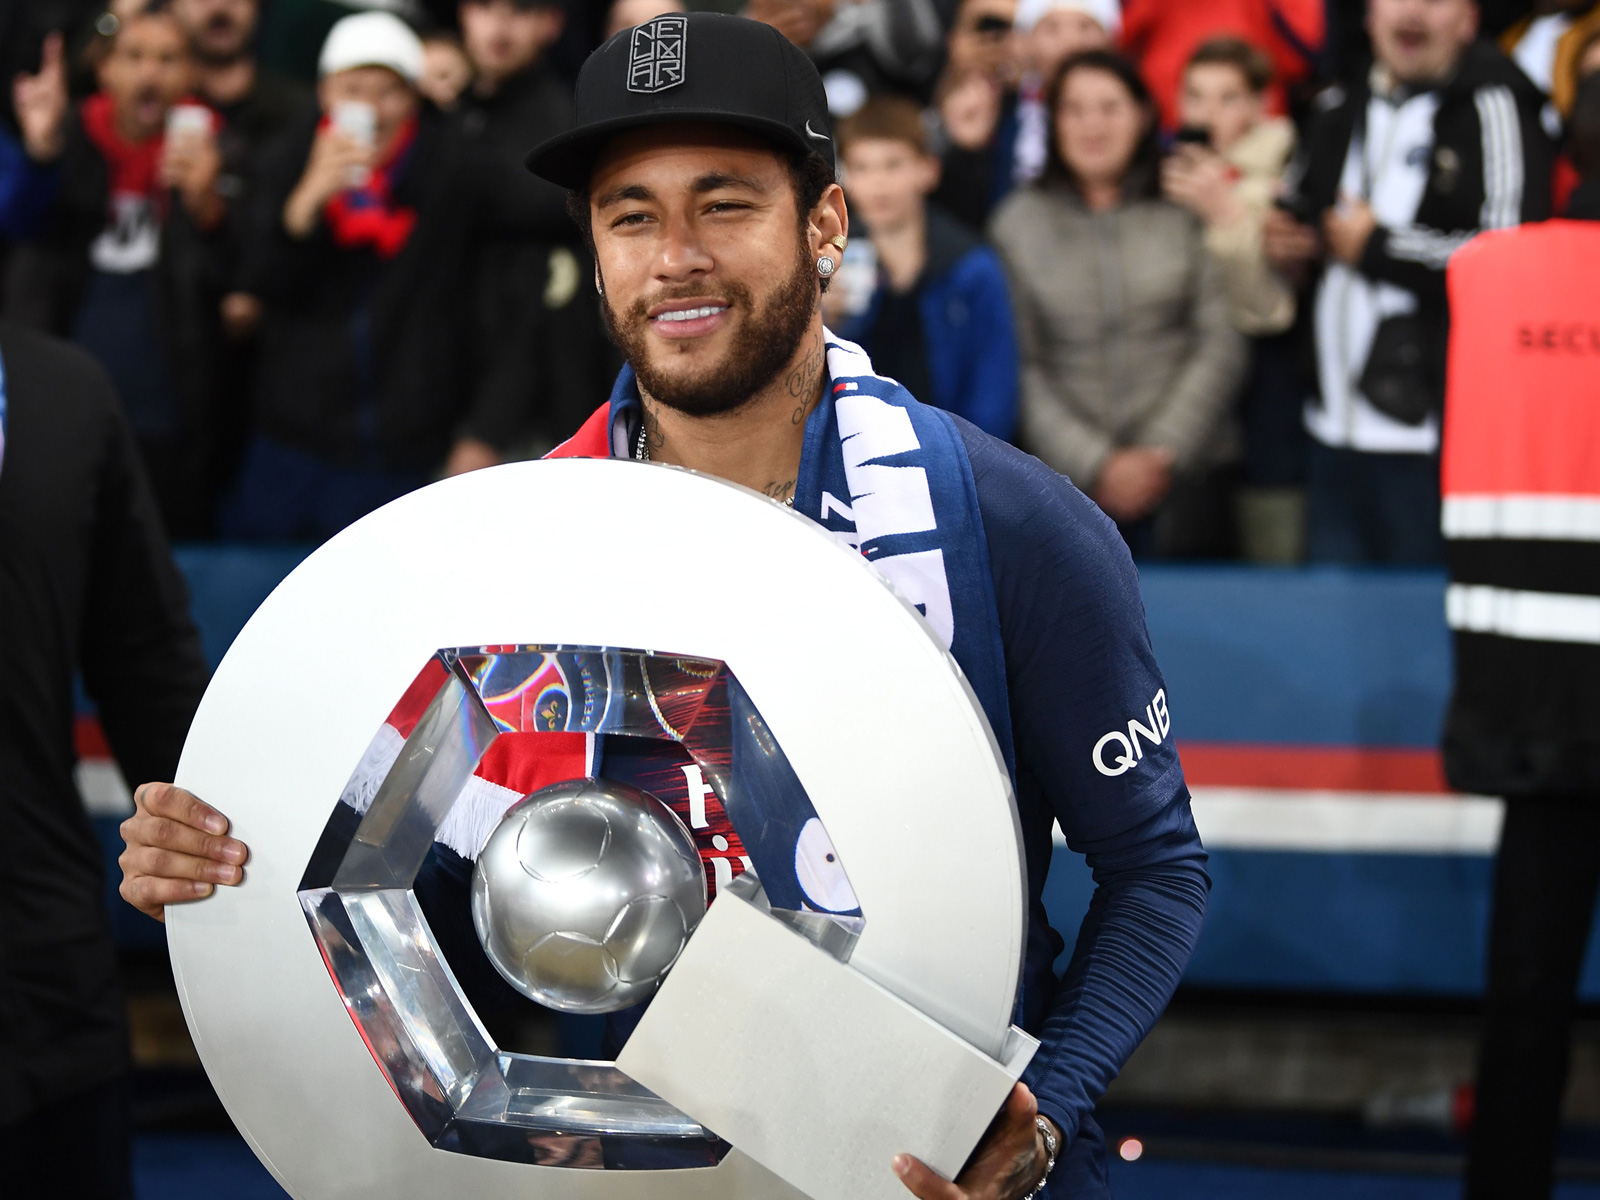 Neymar could be on the move from PSG